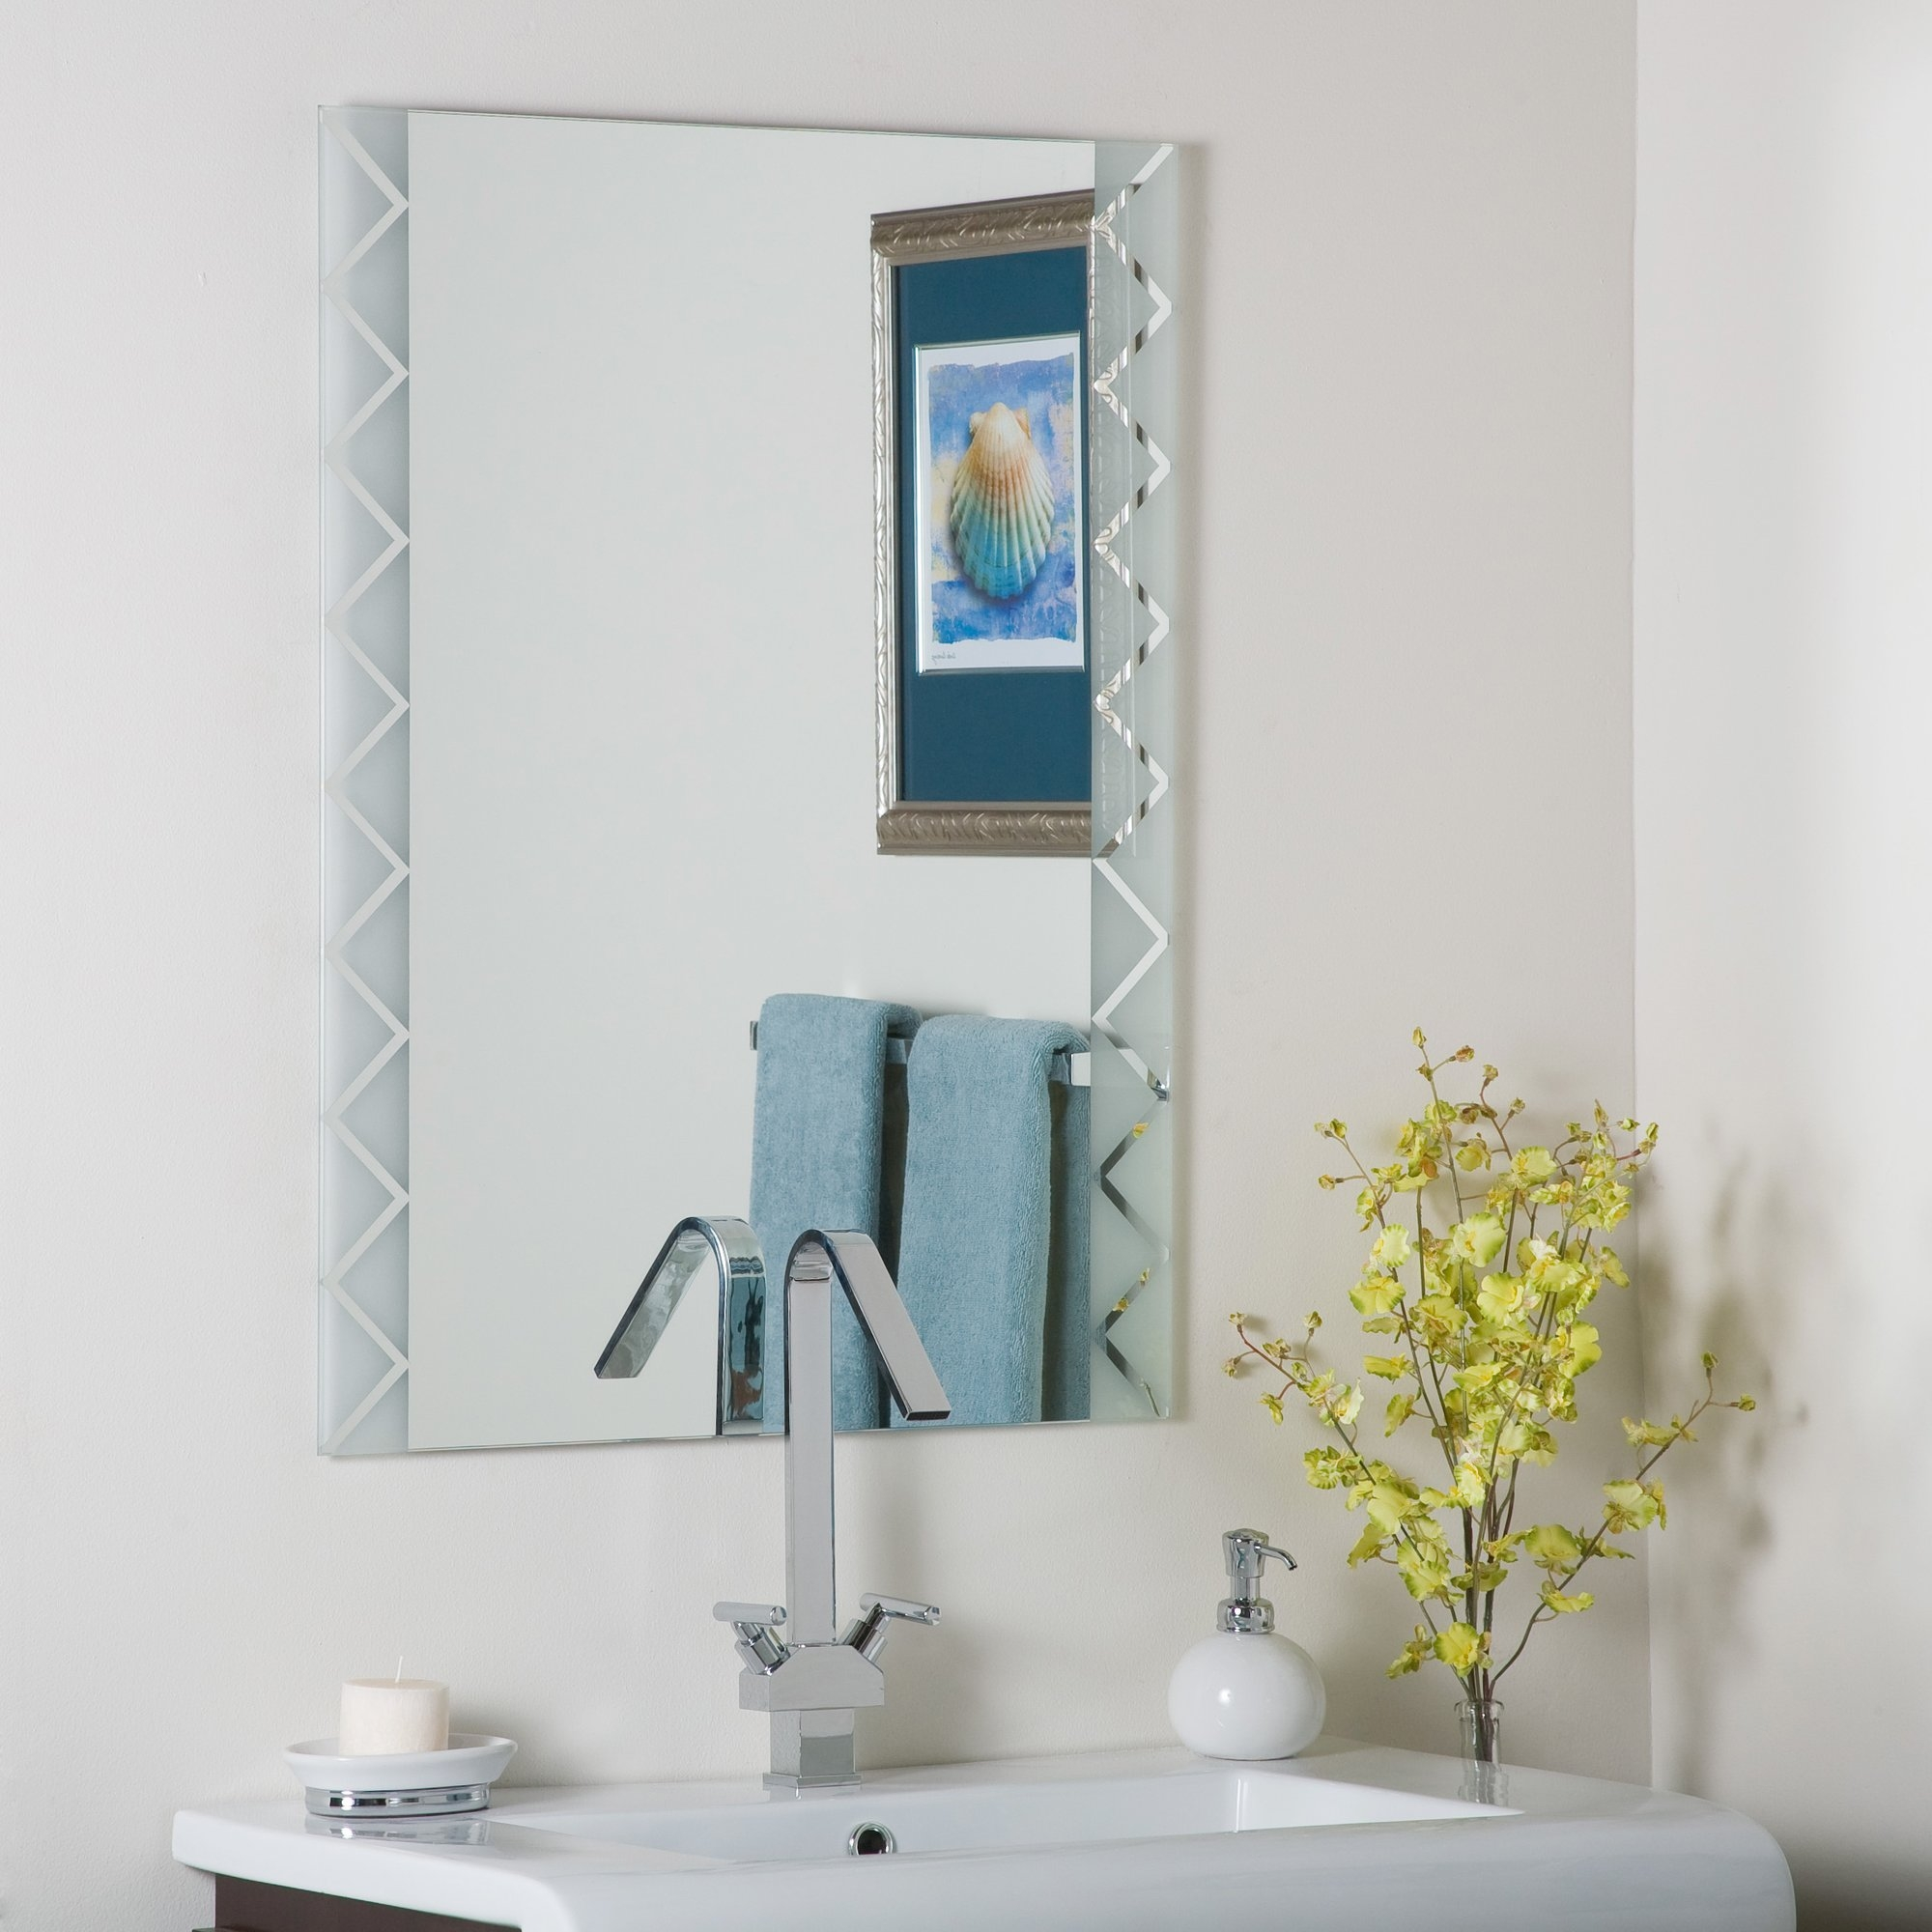 Decor Wonderland Frameless Butterfly Wall Mirror Reviews Wayfair Regarding Butterfly Wall Mirror (Image 6 of 15)